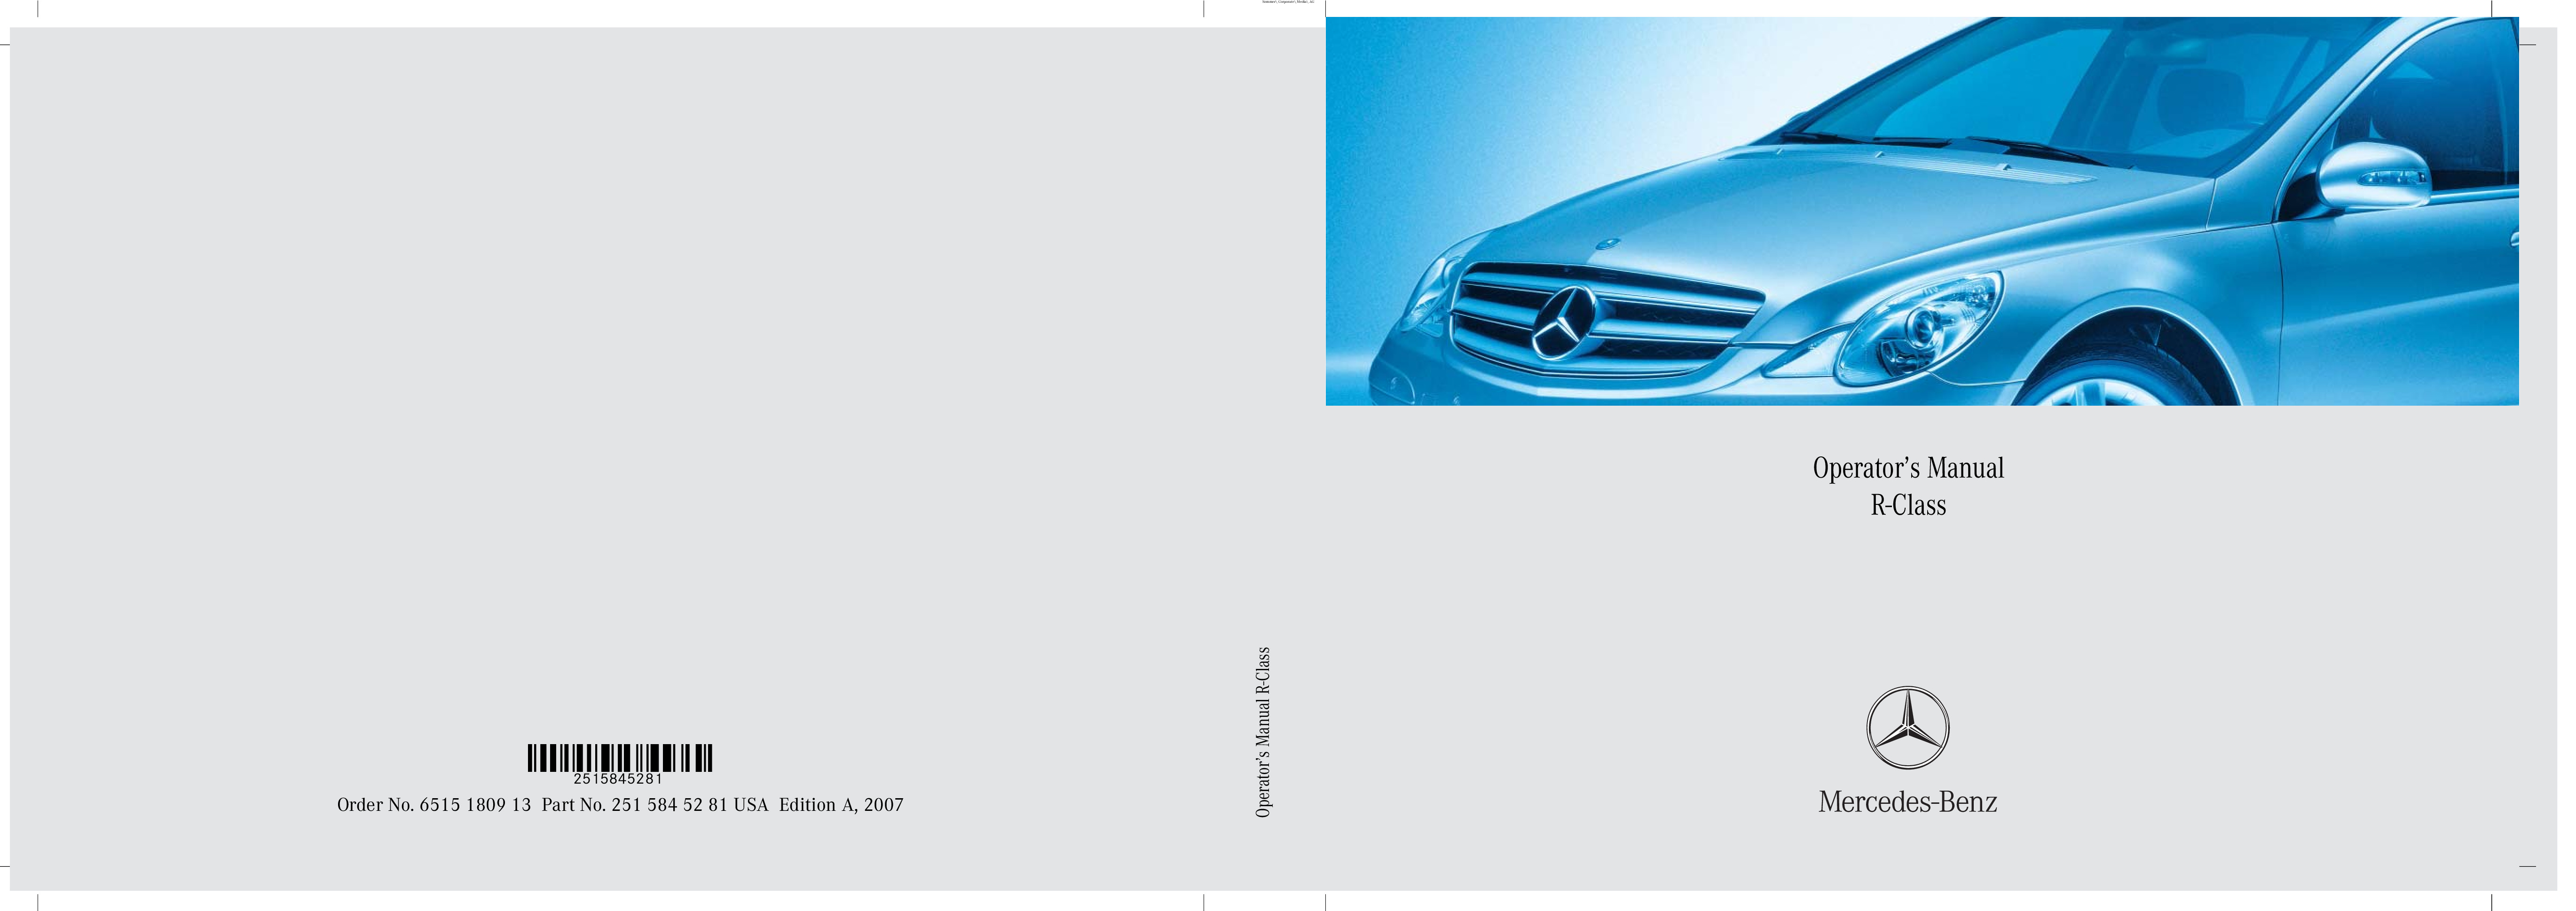 2007 Mercedes-Benz R Class owners manual